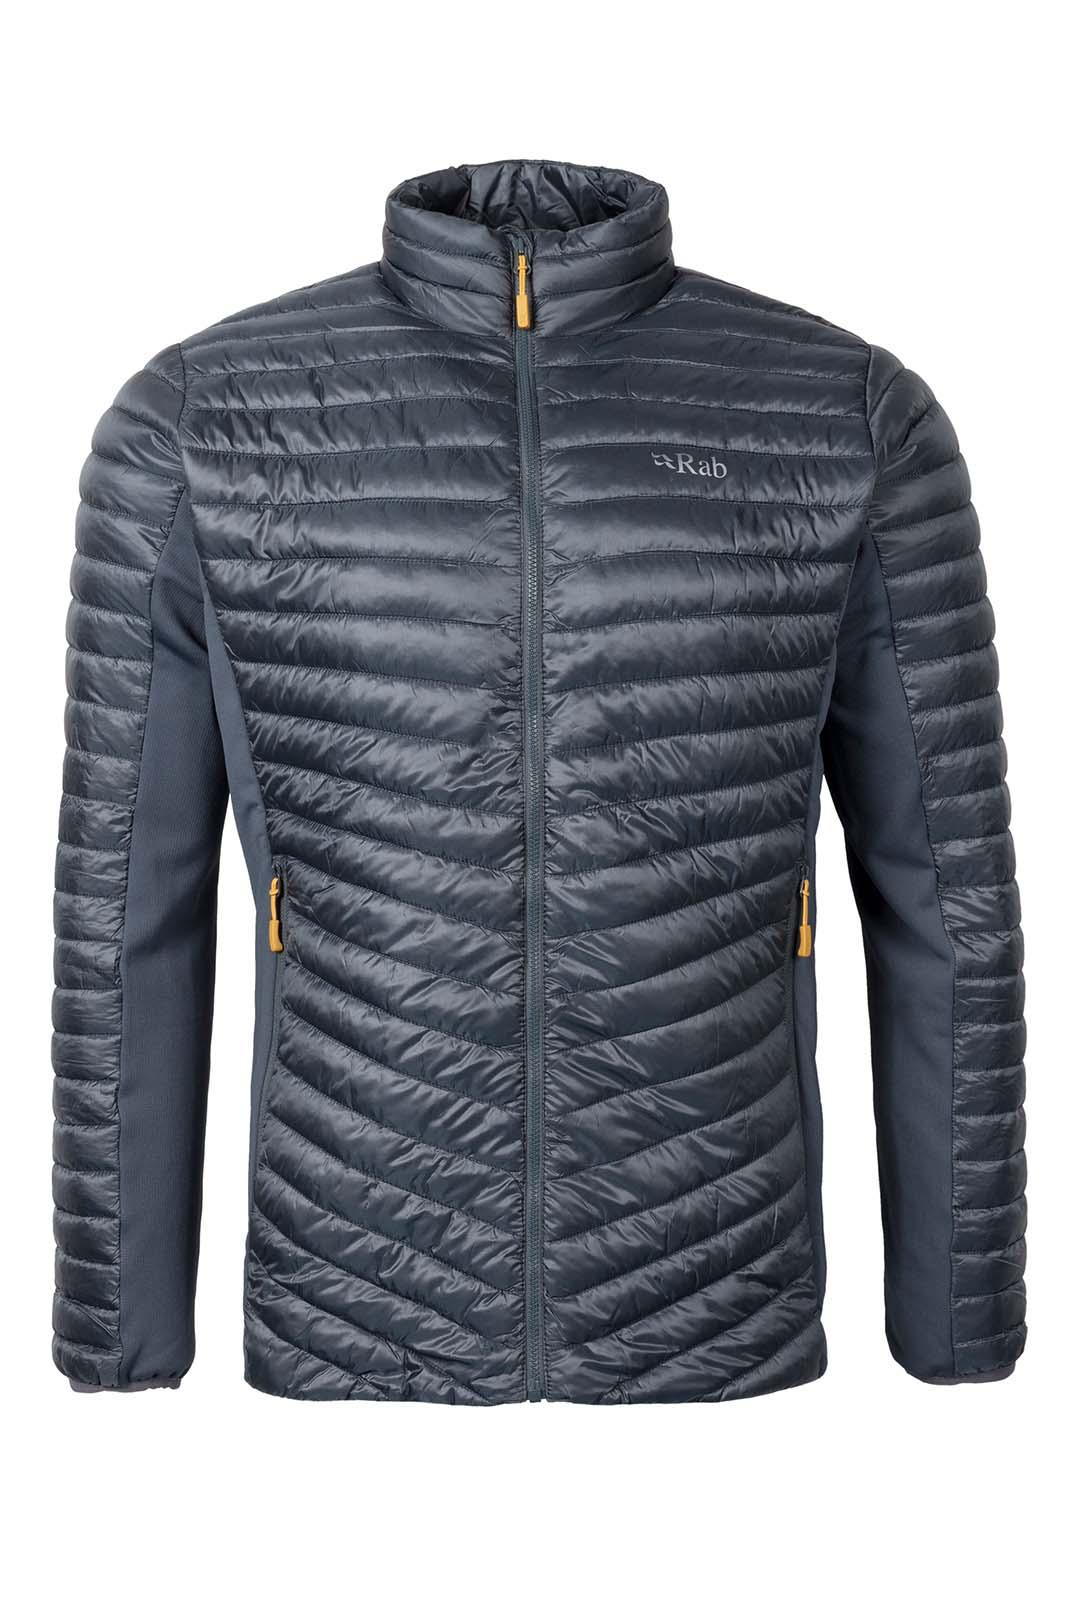 cirrus_flex_jacket_steel_qio_23_st_large_1.jpg